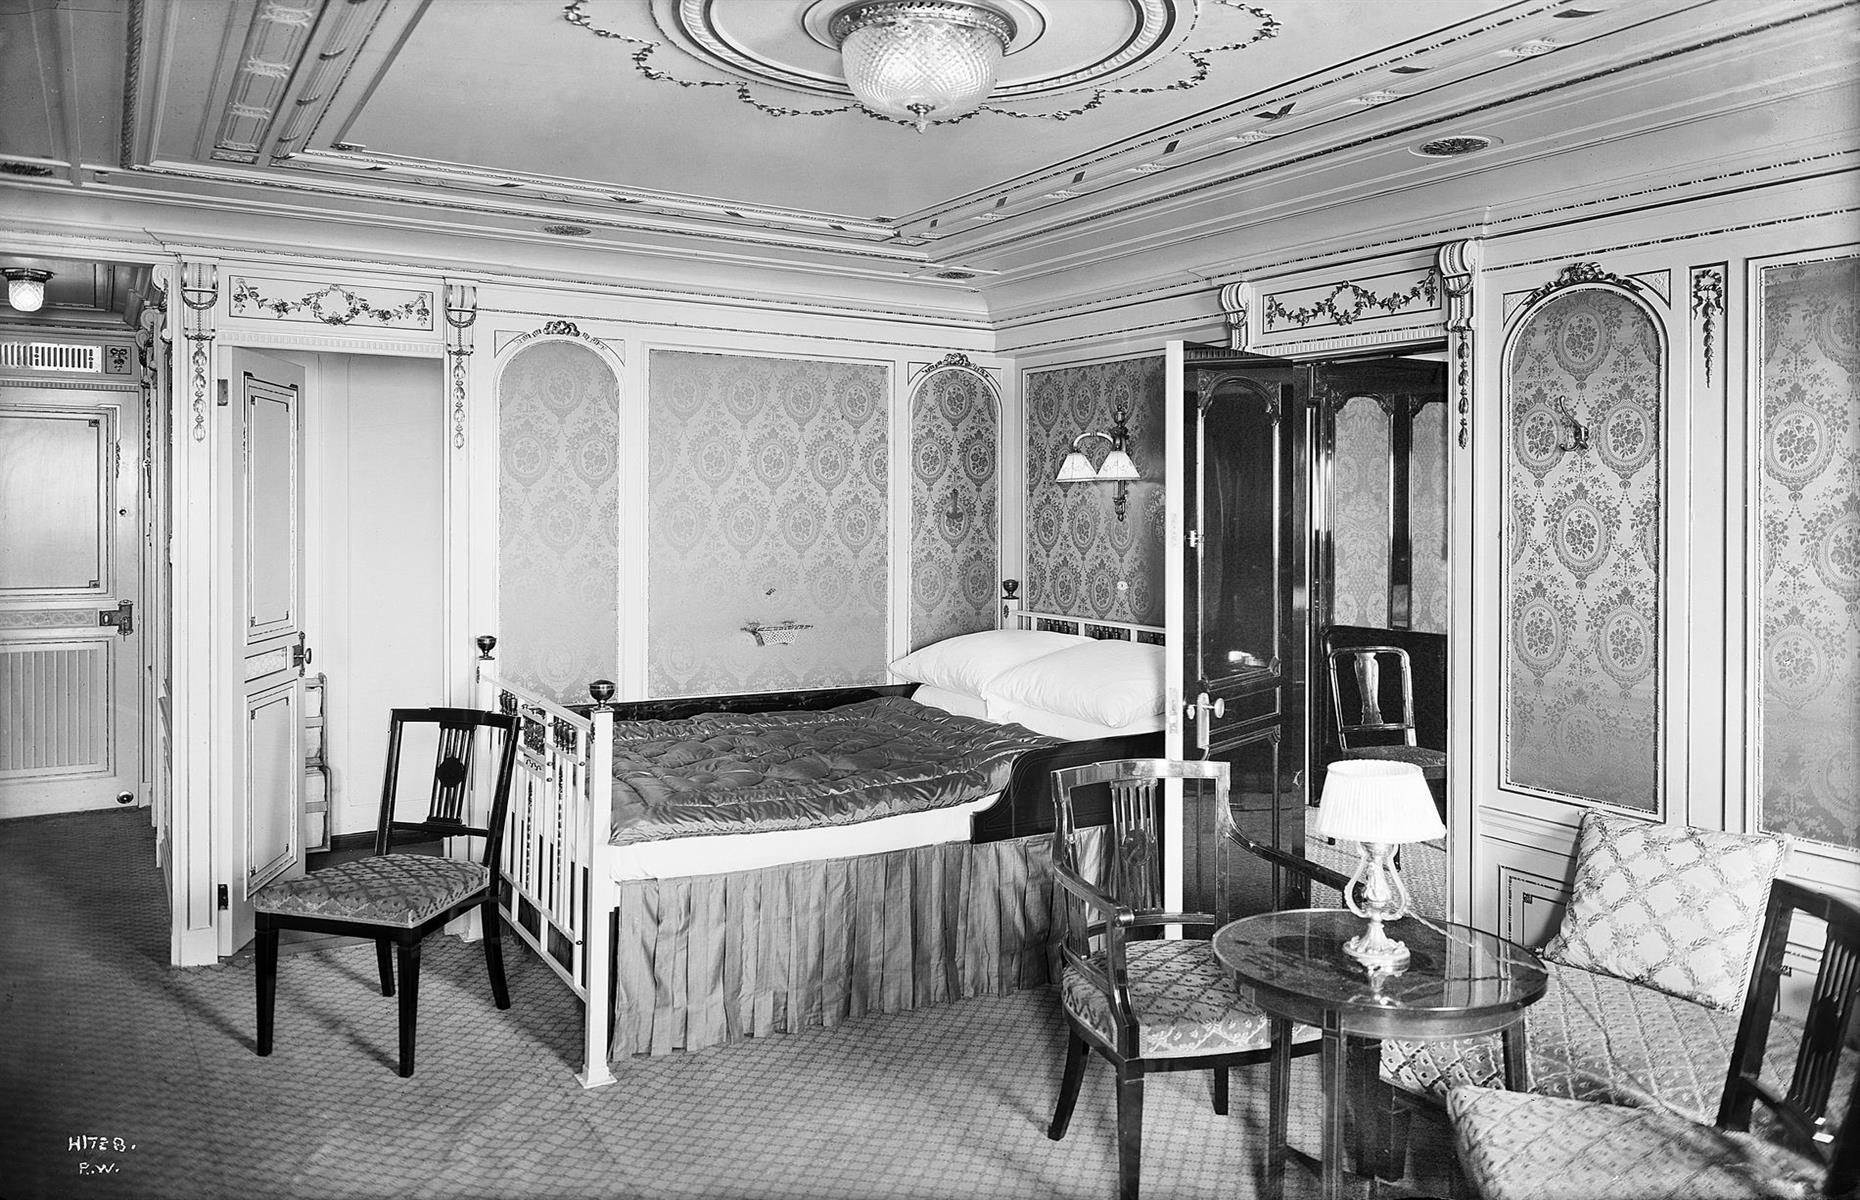 Slide 18 of 46: Two of the parlor suites were occupied by J Bruce Ismay, the chairman of the White Star Line (more about him later). The suite pictured here, B-58, was taken by the Baxter family, from Montréal, Canada, who boarded at Cherbourg. Mrs Baxter was a widow and traveling with her daughter Mary Hélène and son Quigg, who went down with the ship.